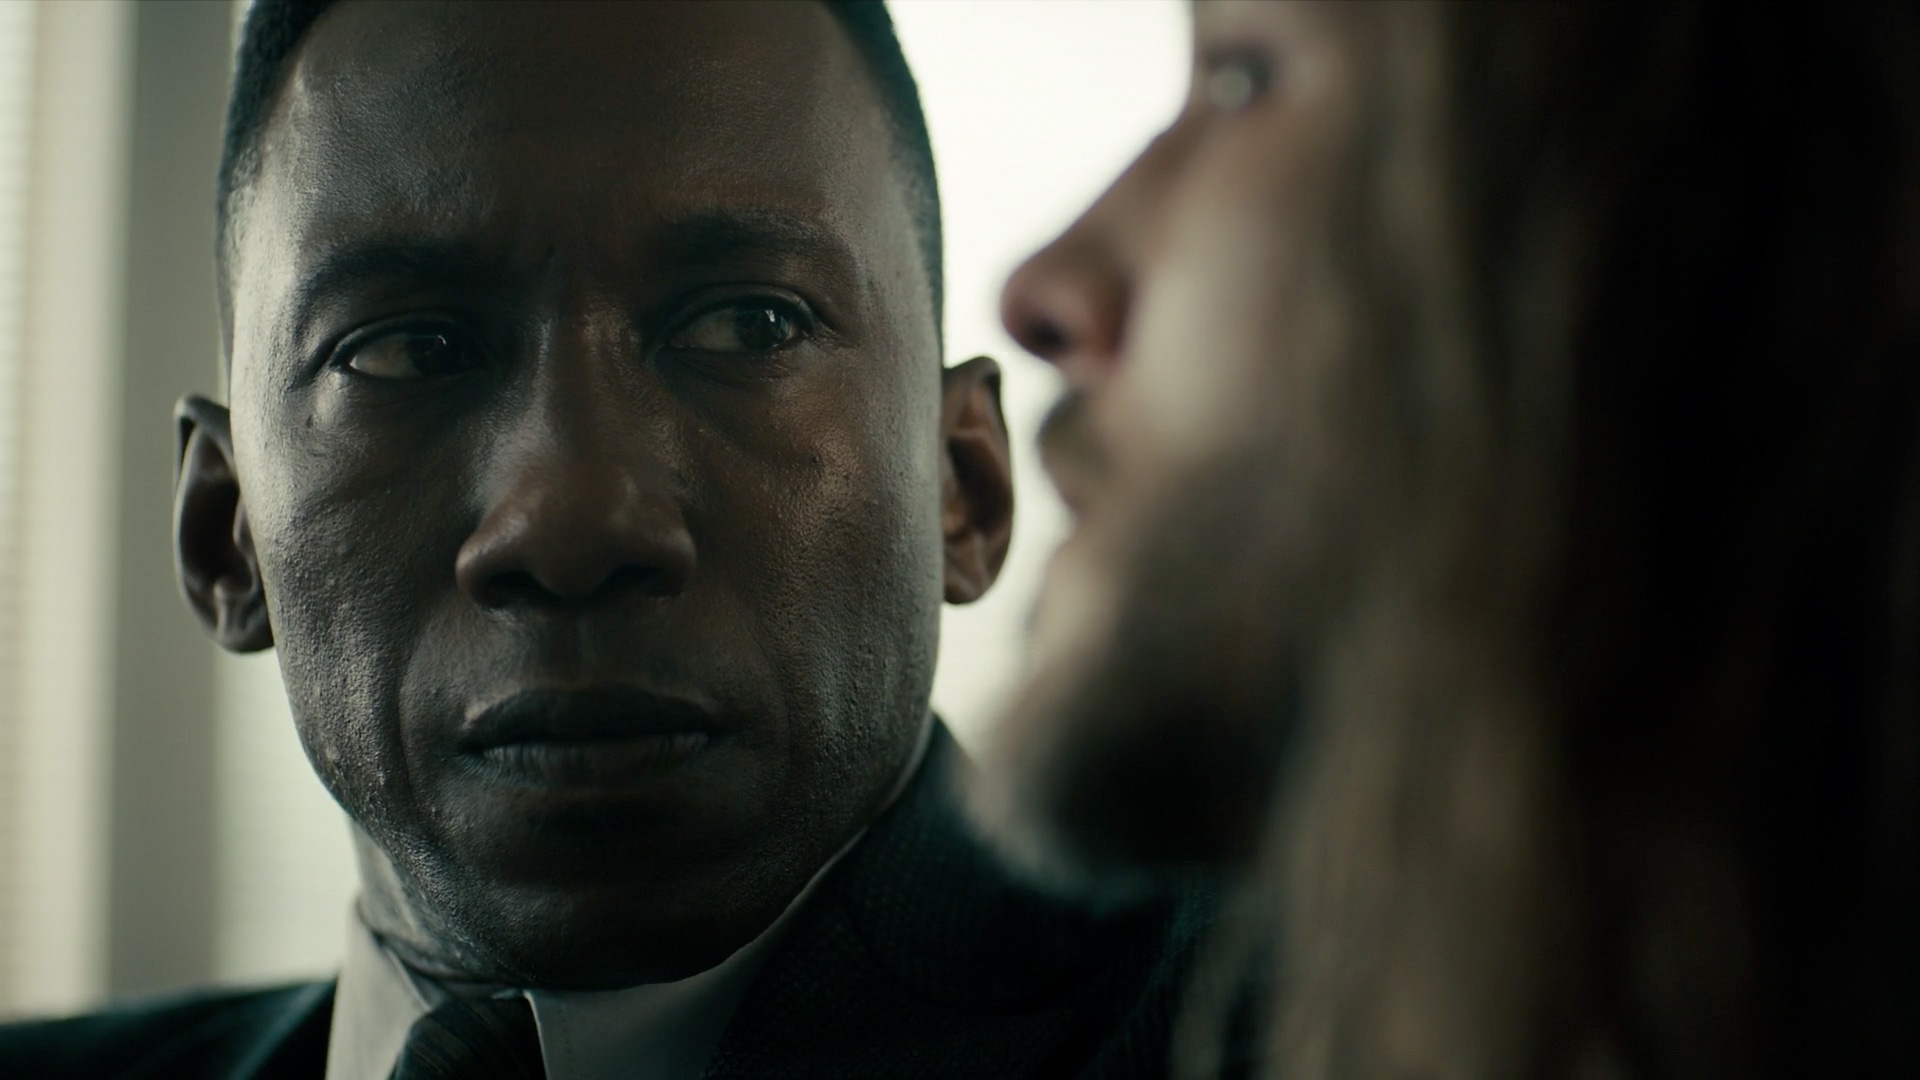 True Detective - Official Website for the HBO Series